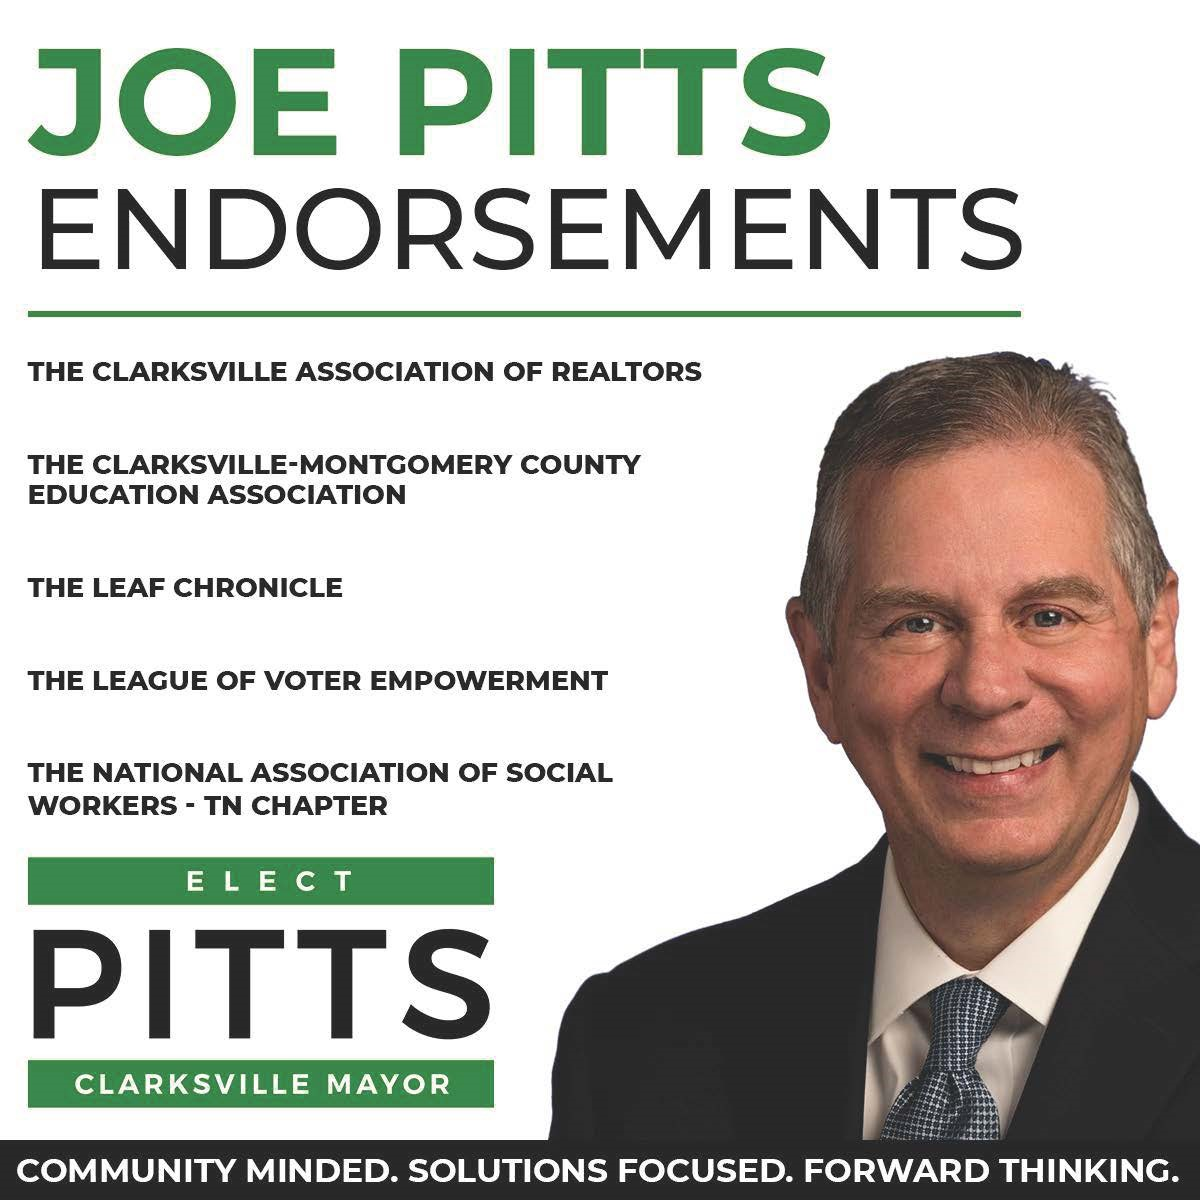 """Paid For By """"Pitts For Clarksville Mayor"""", James A. Halford, Jr. Treasurer"""